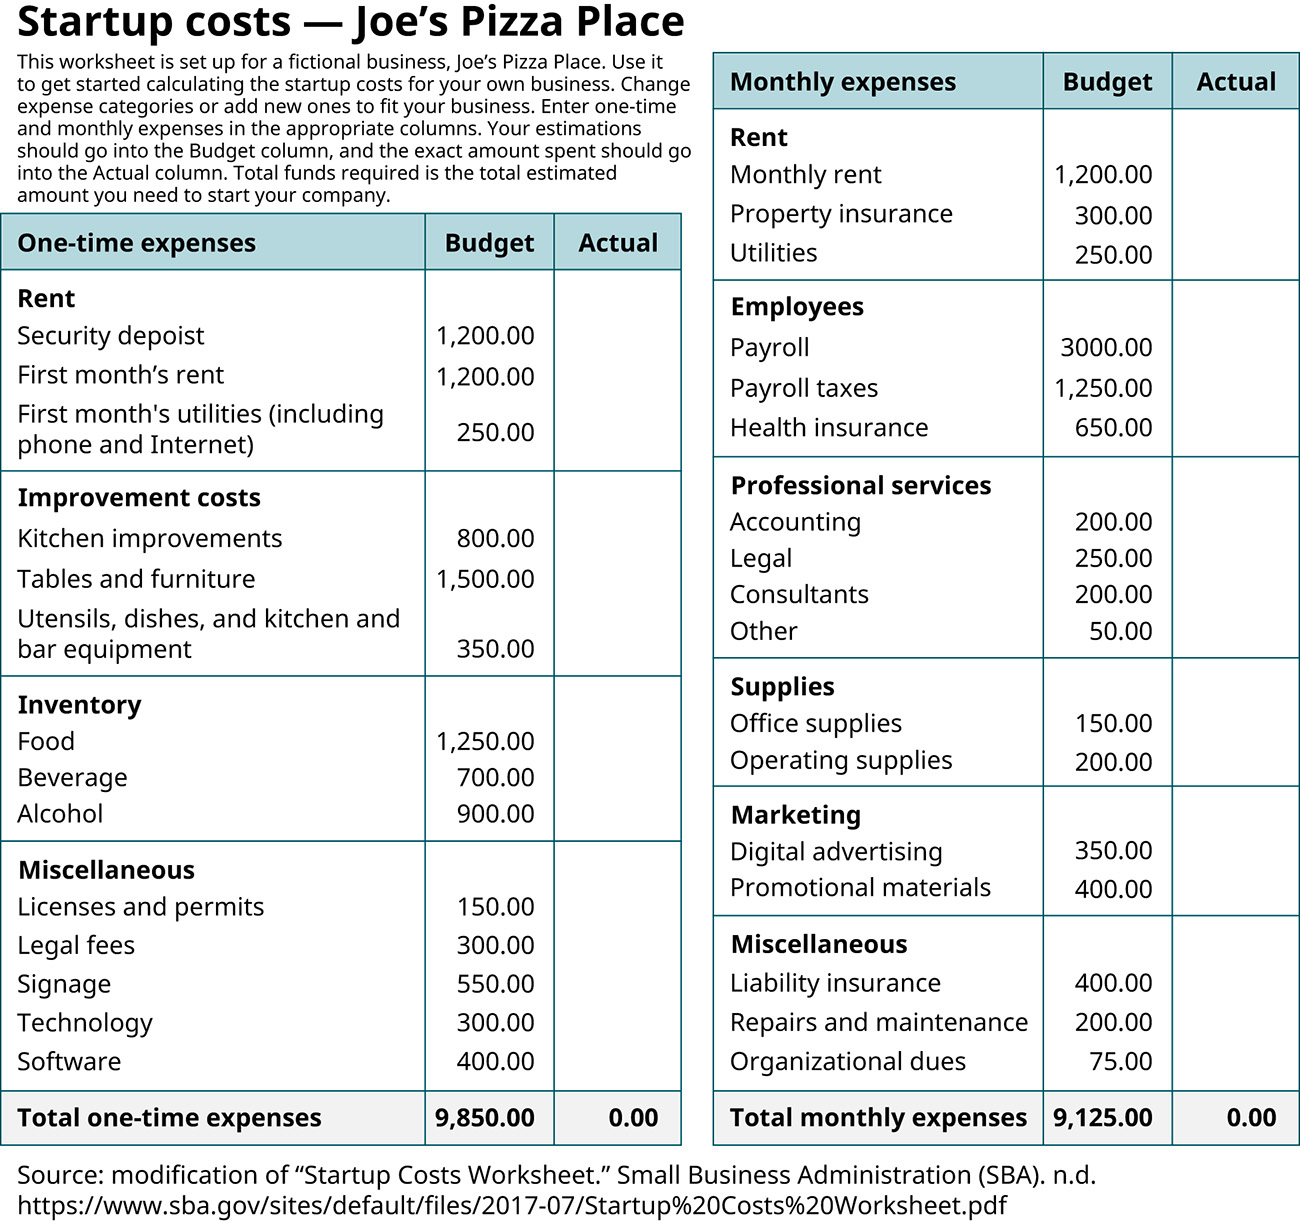 Worksheet of startup costs for Joe's Pizza Place include one-time expenses like improvement costs, some aspects of rent (like security deposit), inventory, and miscellaneous (like signage), and monthly expenses, like rent, employee wages, professional services, supplies, marketing, and miscellaneous, like repairs and maintenance.